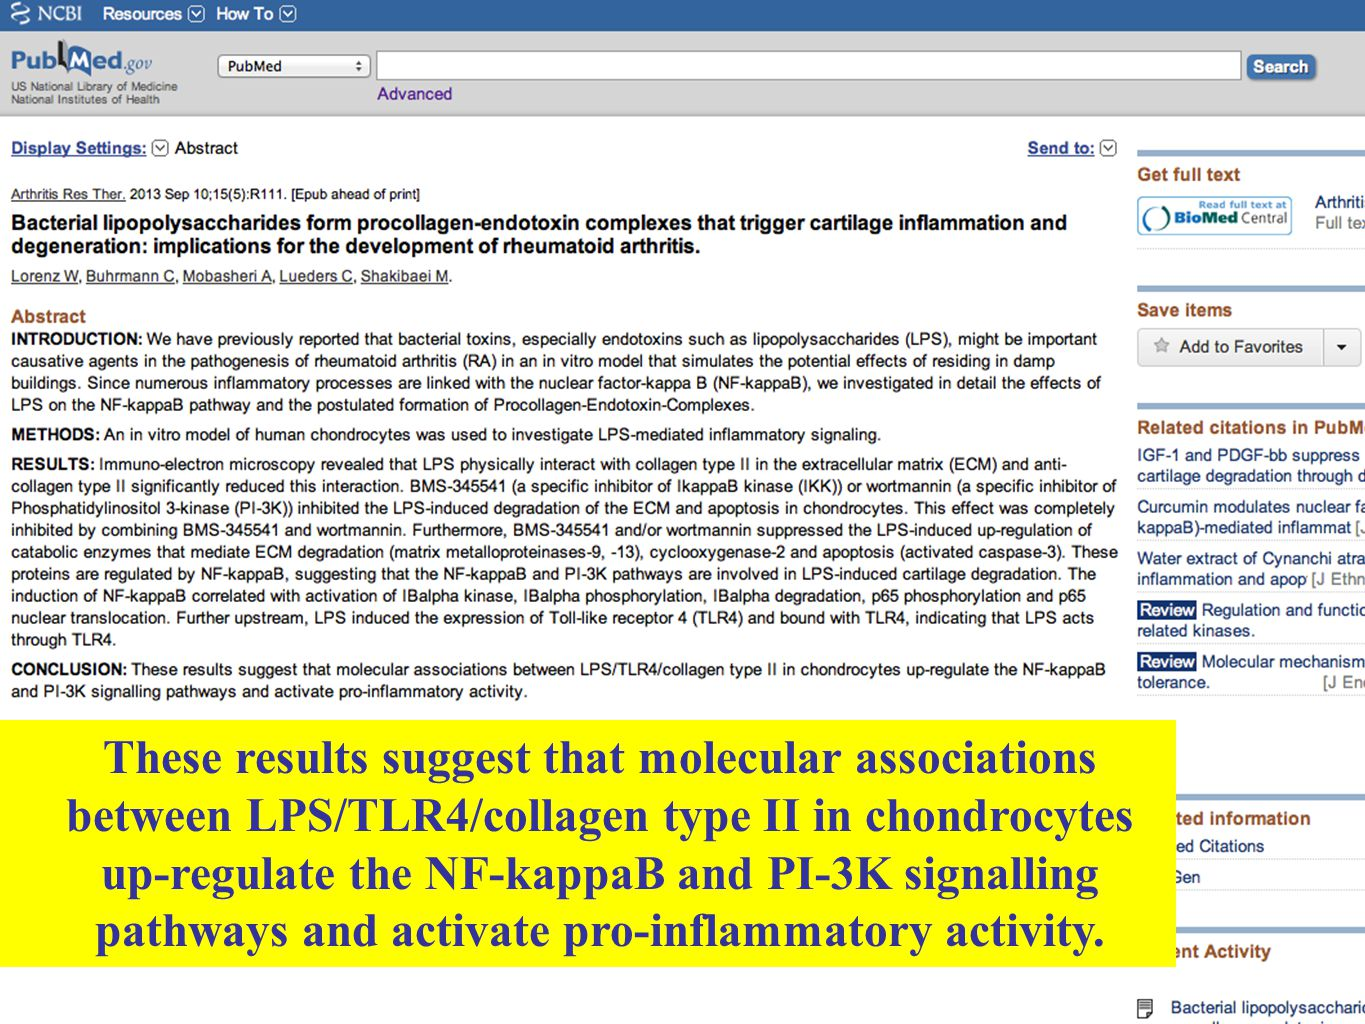 SIBO -Small Intestine Bacterial Overgrowth Of the 42 fibromyalgia patients, 100% were positive for SIBO.